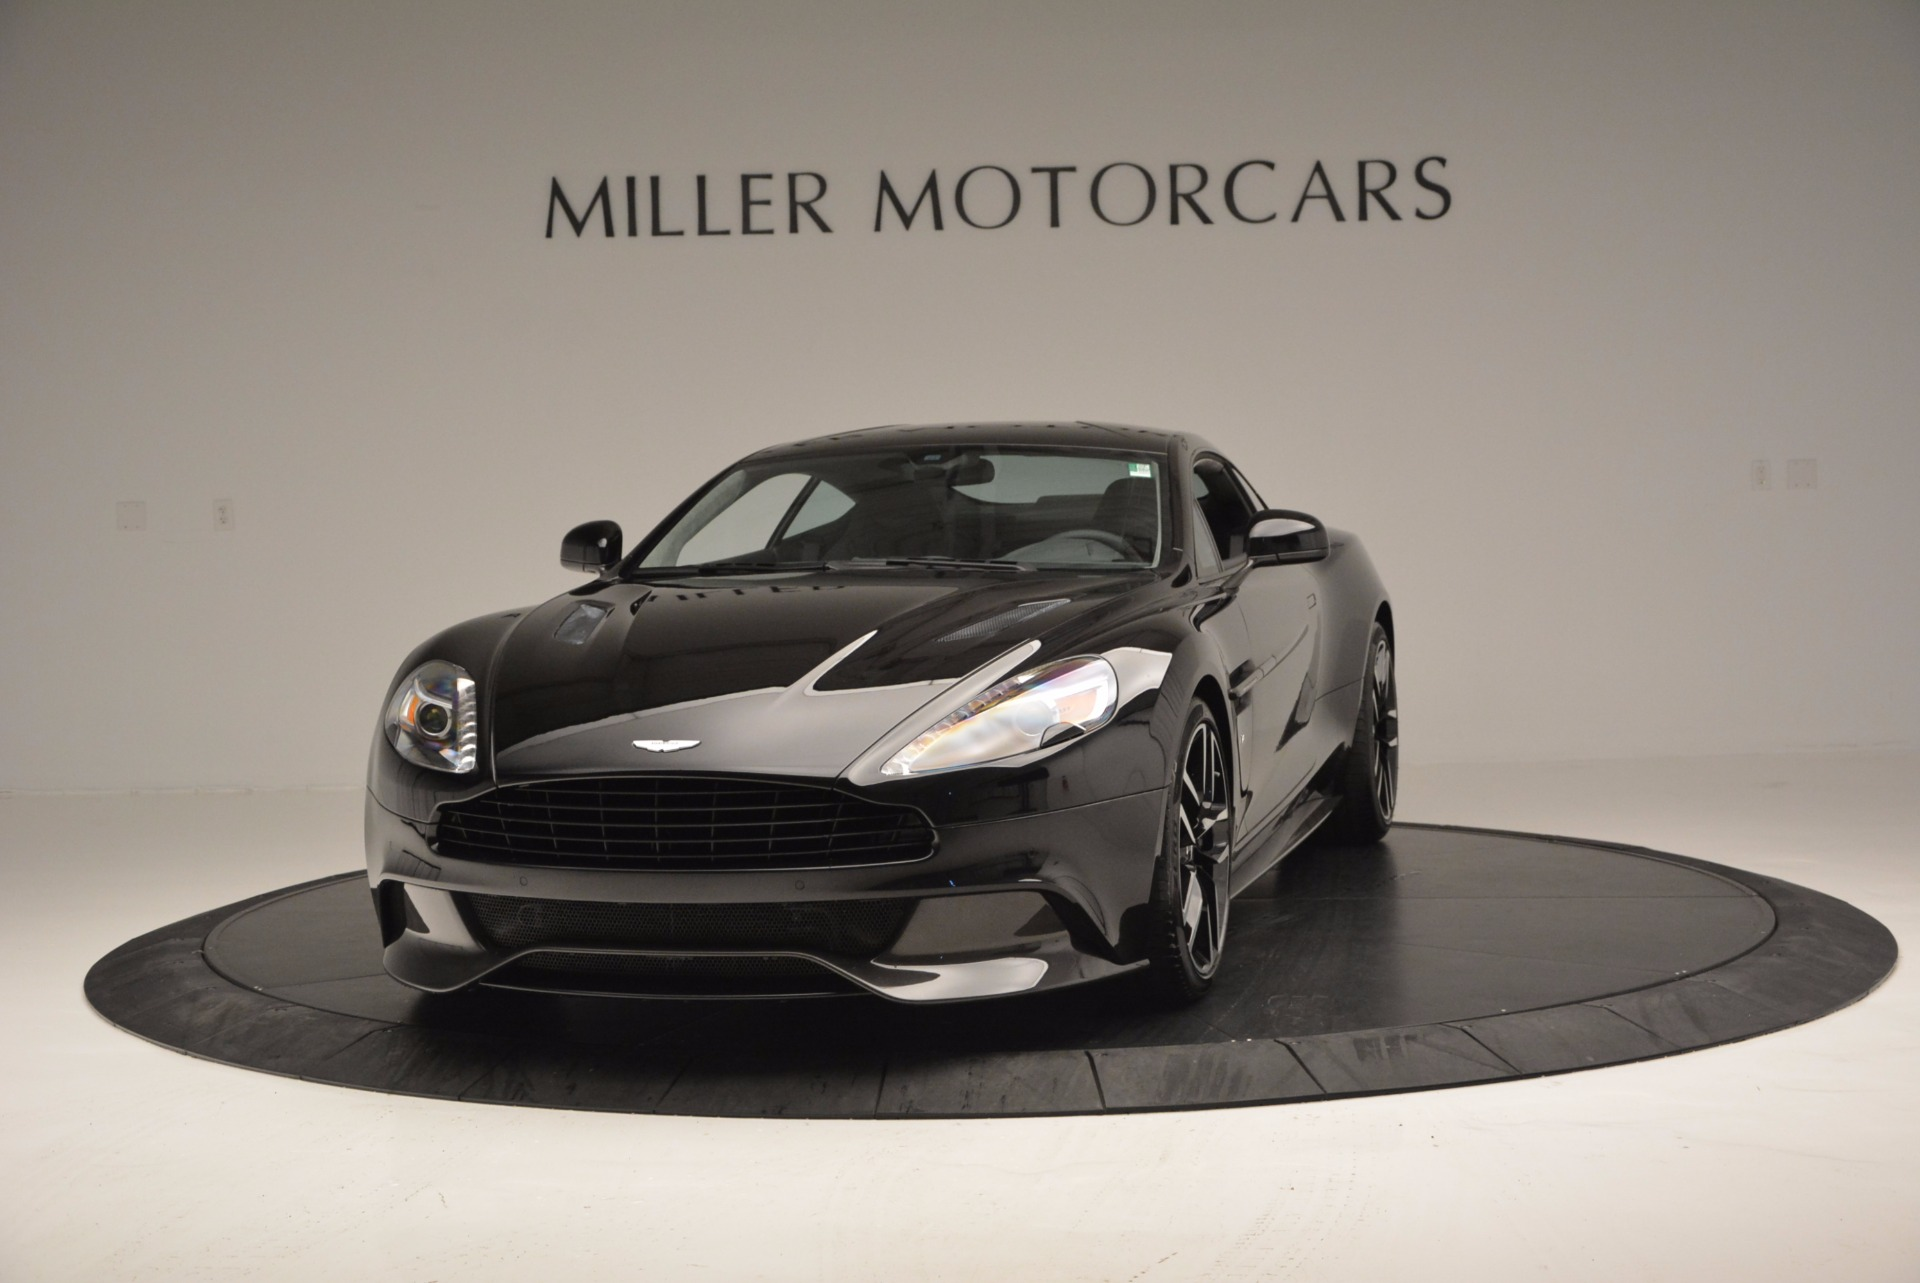 Used 2017 Aston Martin Vanquish Coupe for sale Sold at Aston Martin of Greenwich in Greenwich CT 06830 1